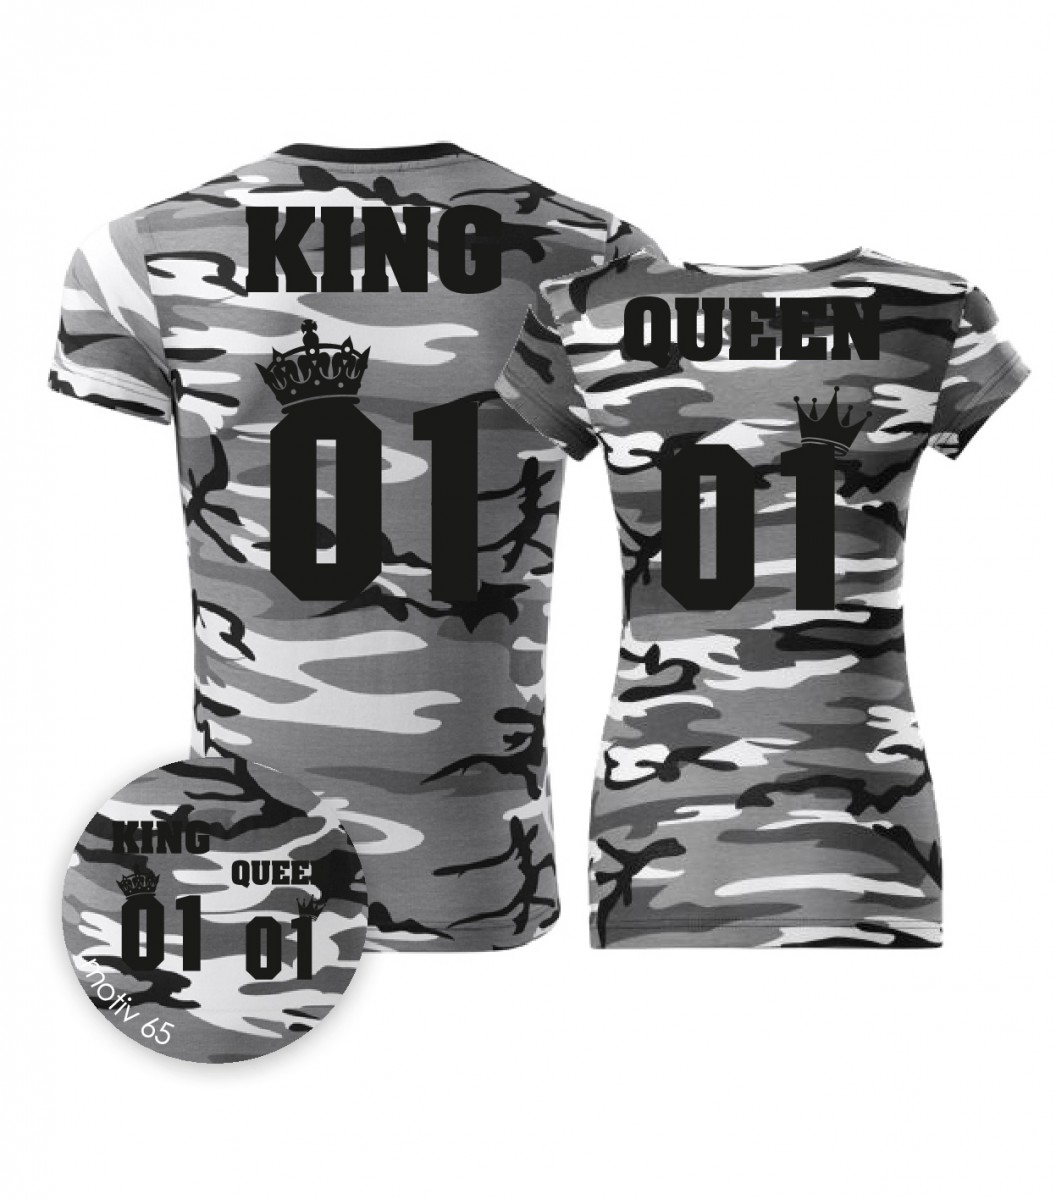 Trička pro páry King and Queen 065 Camouflage Gray  e9e0911235